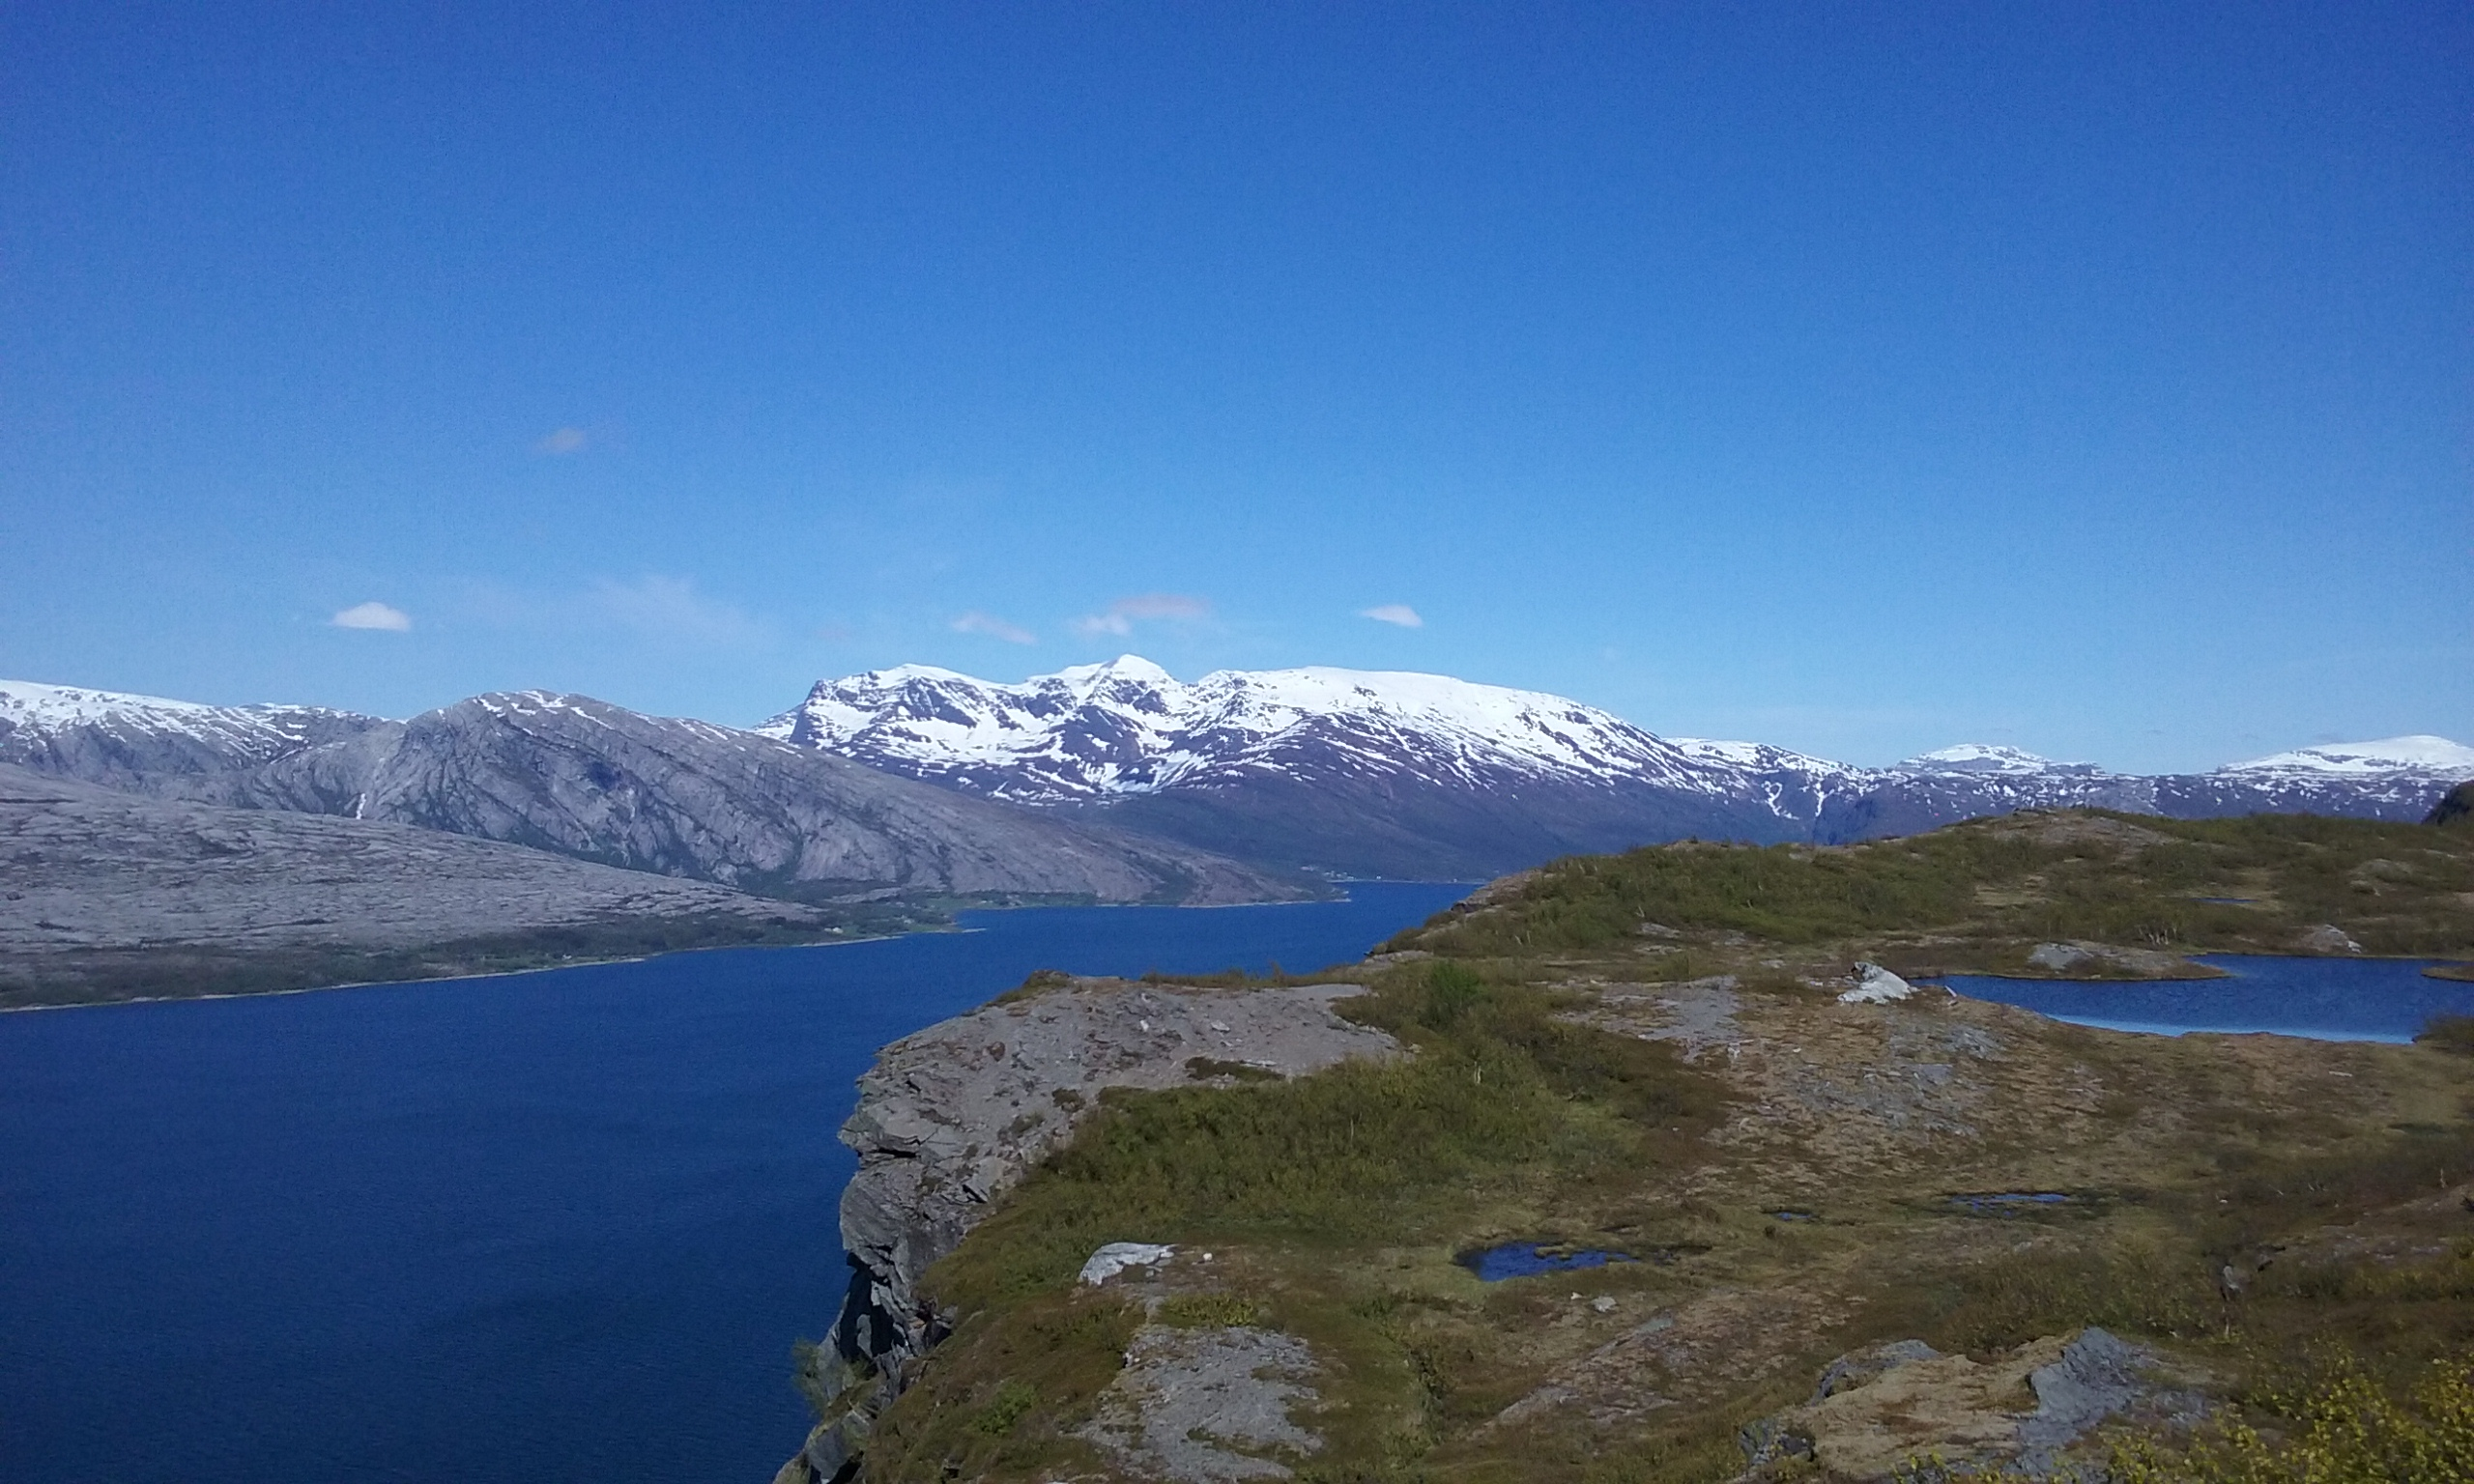 Norwegian natural scenery